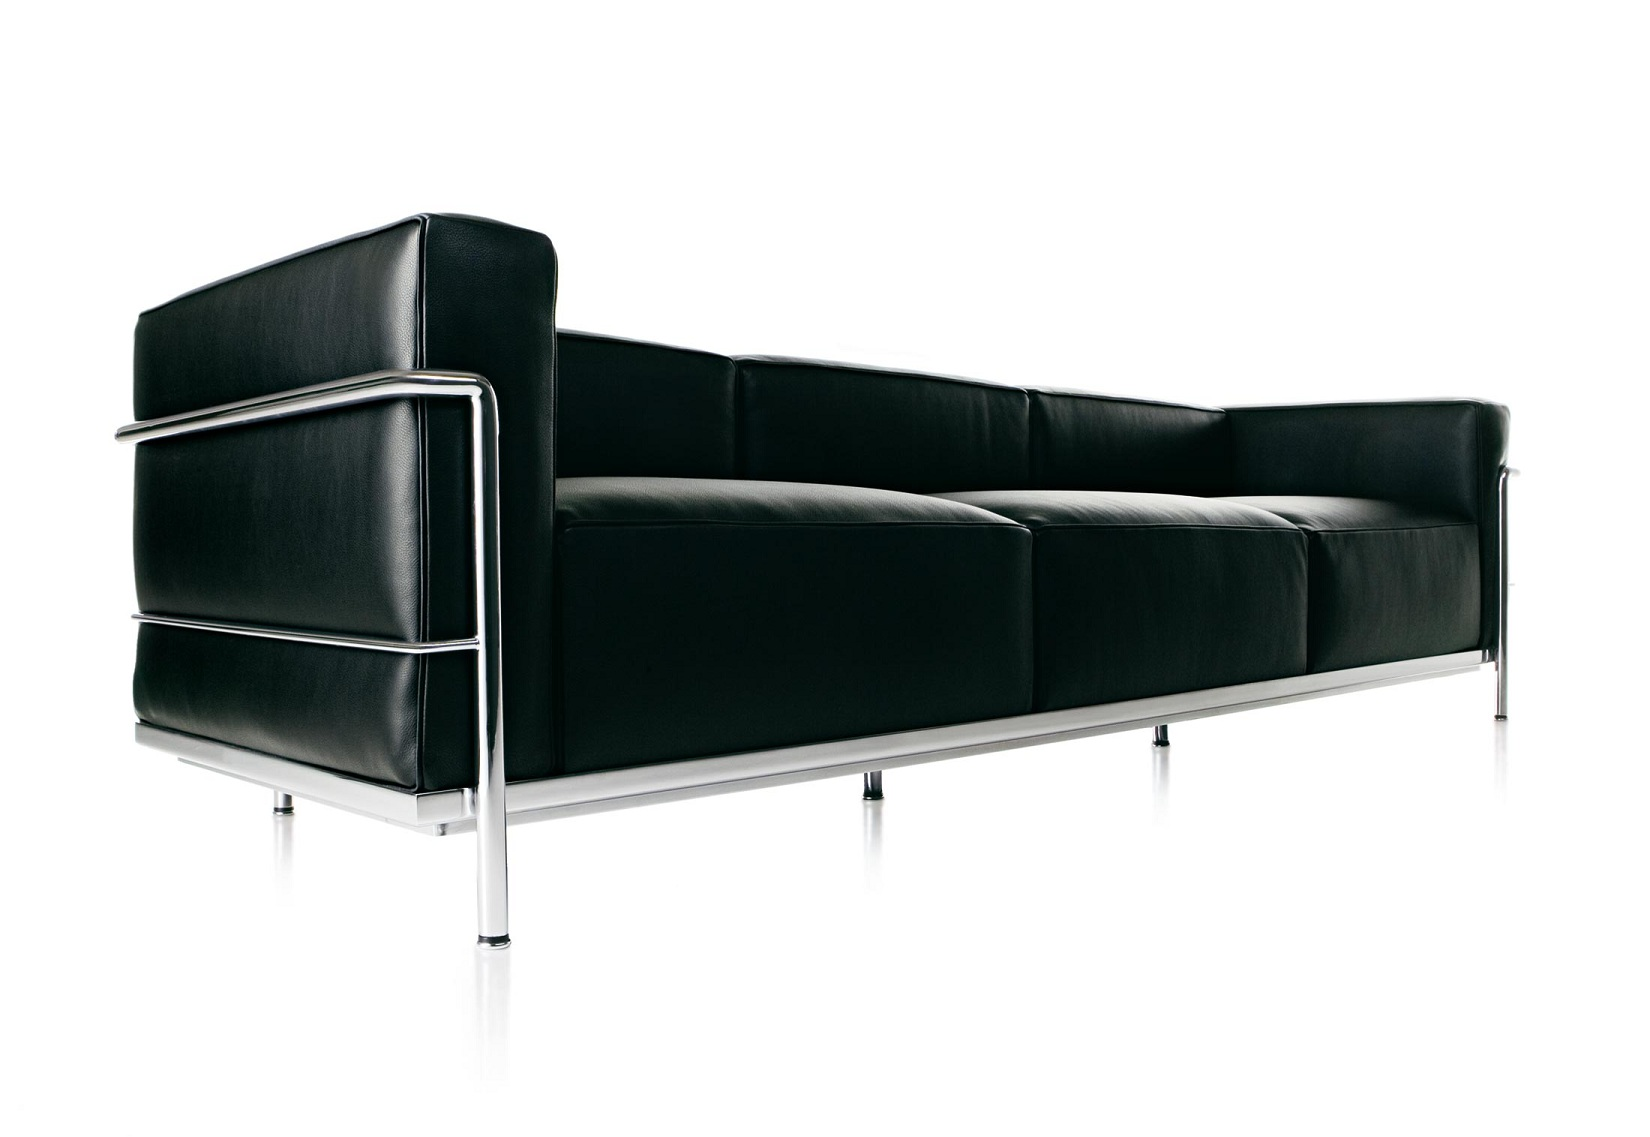 Le corbusier extra grande confort sofa for Le corbusier sofa nachbau